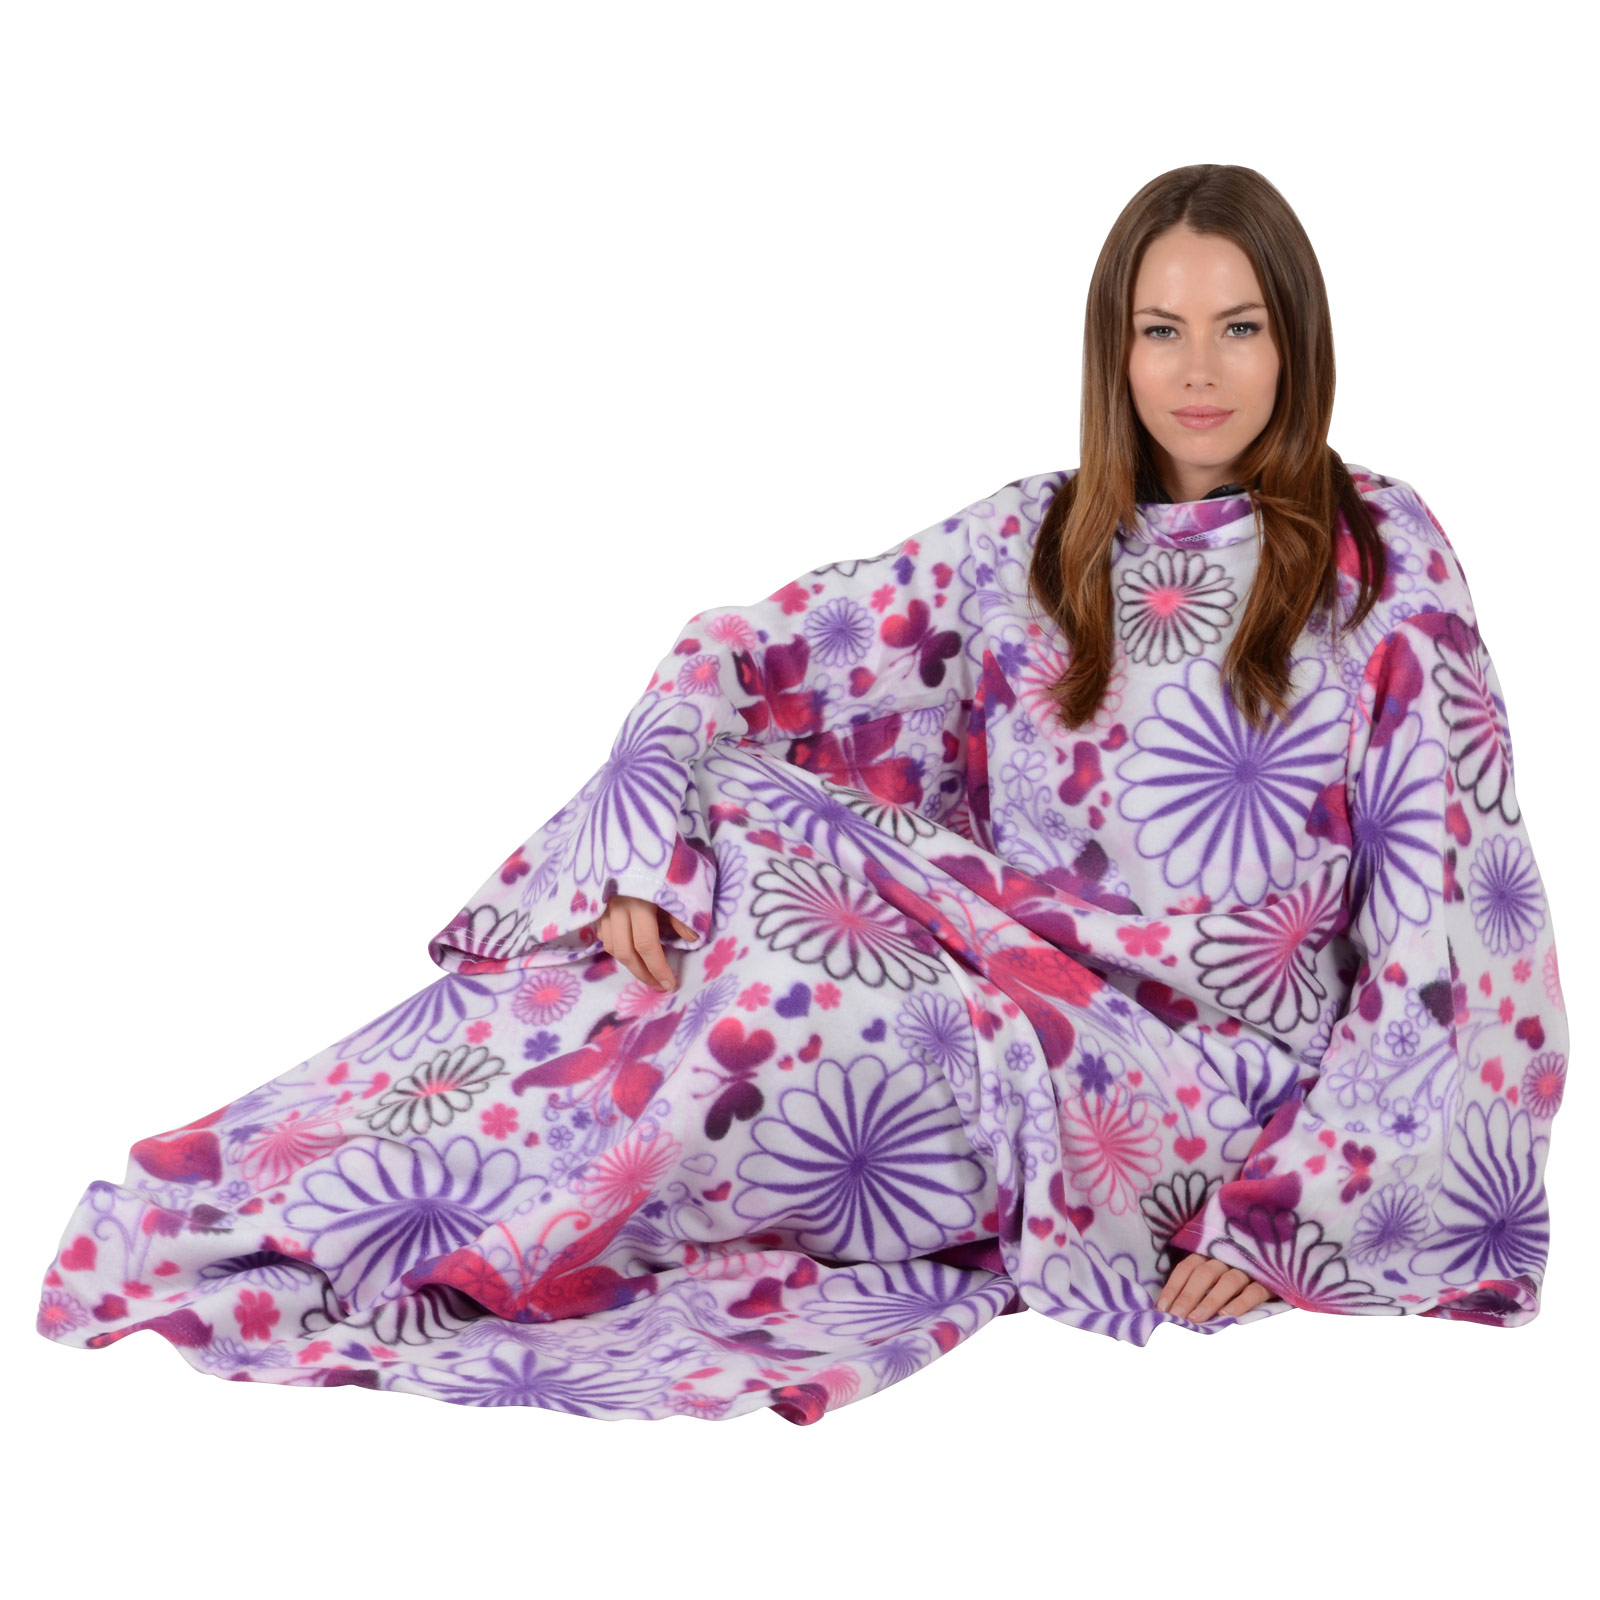 Snuggie Blankets. Sort & Refine . Showing 40 of 208 results that match your query Product - CozySnuggie Blankets. Sort & Refine . Showing 40 of 208 results that match your query Product - CozySnuggleSleeved Fleece WrapSnuggie Blankets. Sort & Refine . Showing 40 of 208 results that match your query Product - CozySnuggie Blankets. Sort & Refine . Showing 40 of 208 results that match your query Product - CozySnuggleSleeved Fleece WrapBlanket-Snuggie Blankets. Sort & Refine . Showing 40 of 208 results that match your query Product - CozySnuggie Blankets. Sort & Refine . Showing 40 of 208 results that match your query Product - CozySnuggleSleeved Fleece WrapSnuggie Blankets. Sort & Refine . Showing 40 of 208 results that match your query Product - CozySnuggie Blankets. Sort & Refine . Showing 40 of 208 results that match your query Product - CozySnuggleSleeved Fleece WrapBlanket-Adultand Youth Sizes